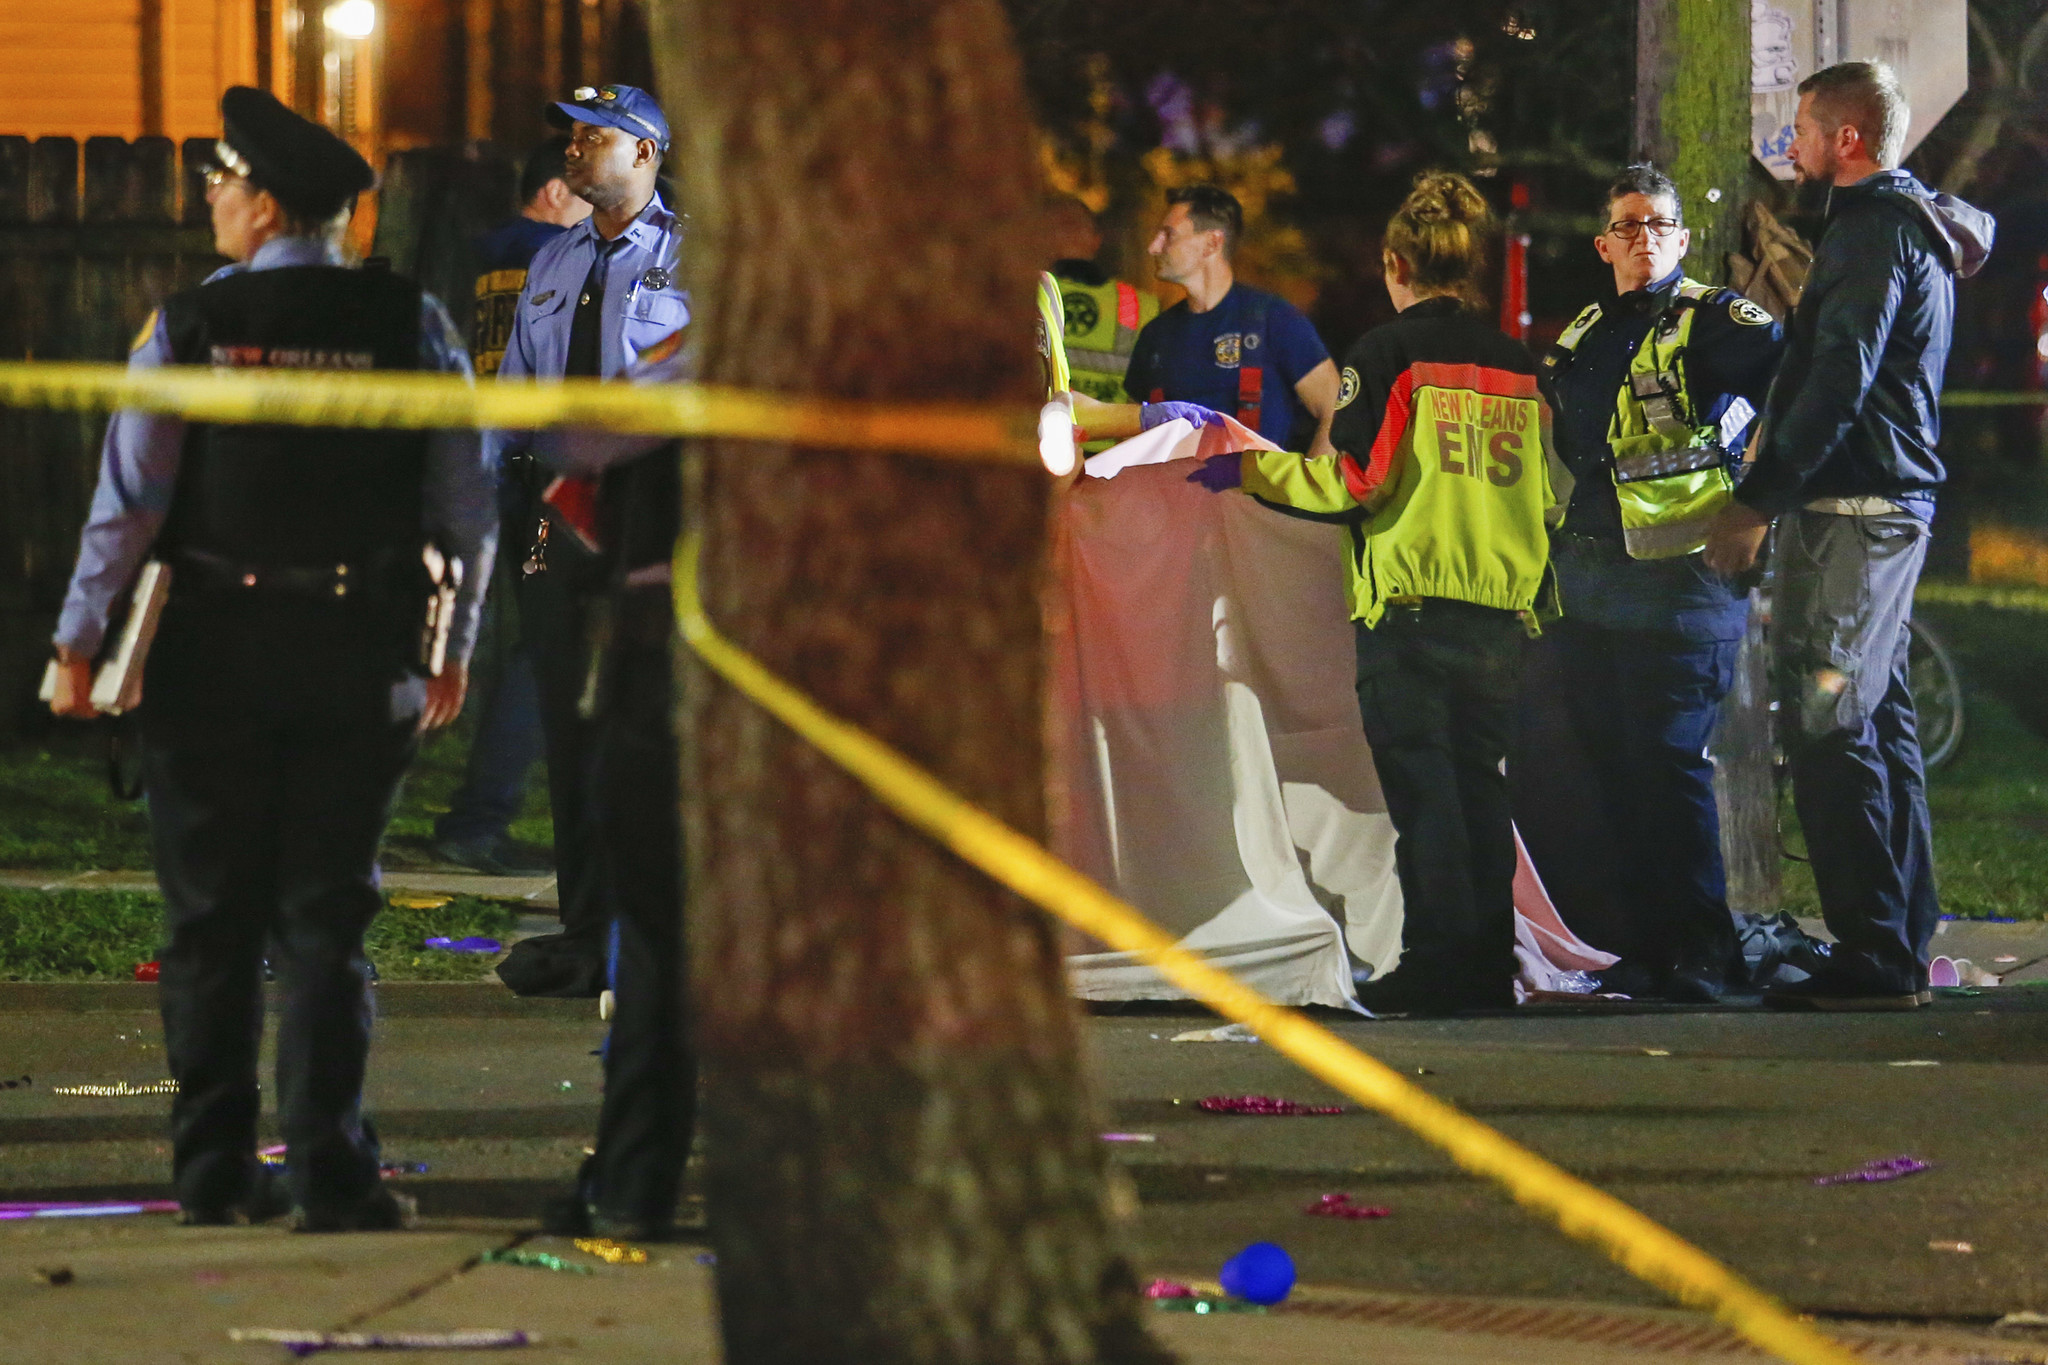 Mardi Gras parade float fatally strikes woman celebrating in New Orleans